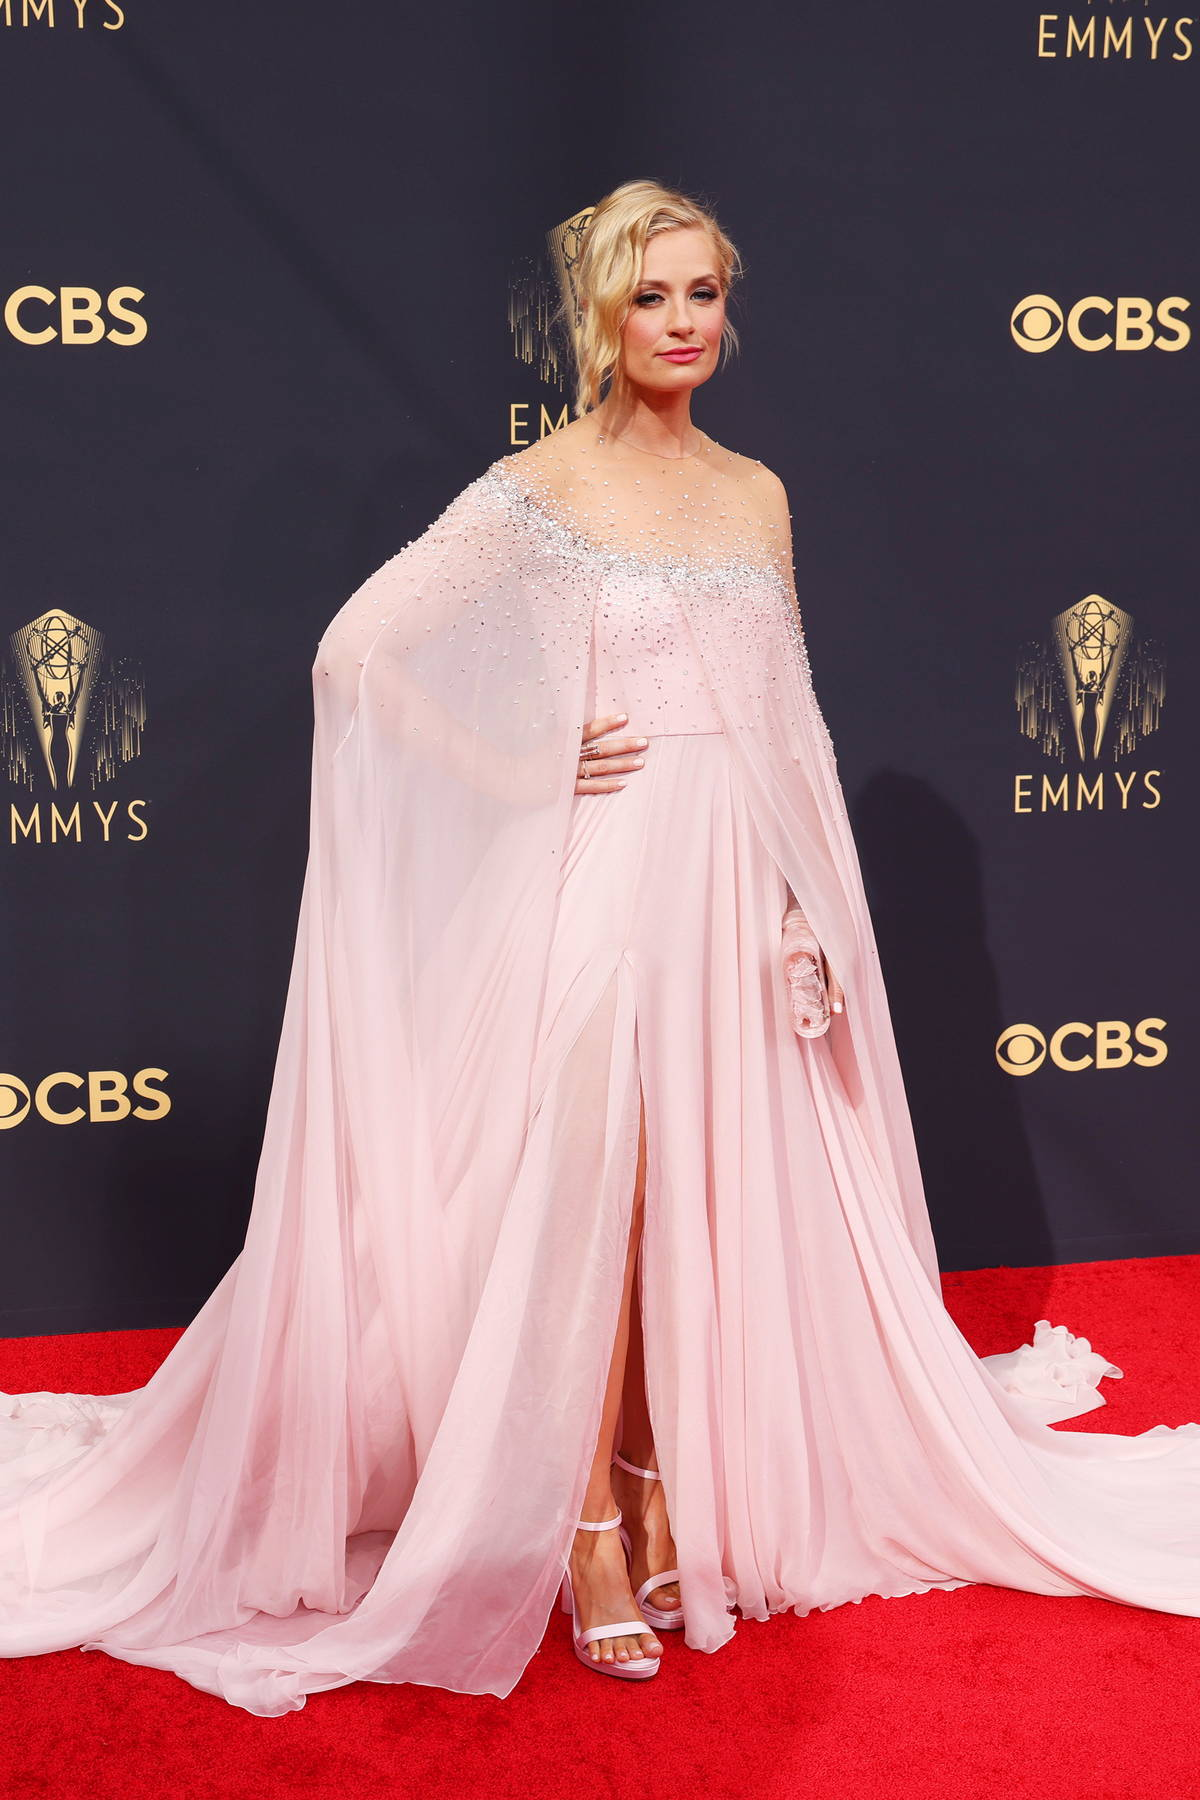 Beth Behrs attends the 73rd Primetime Emmy Awards at L.A. Live in Los Angeles